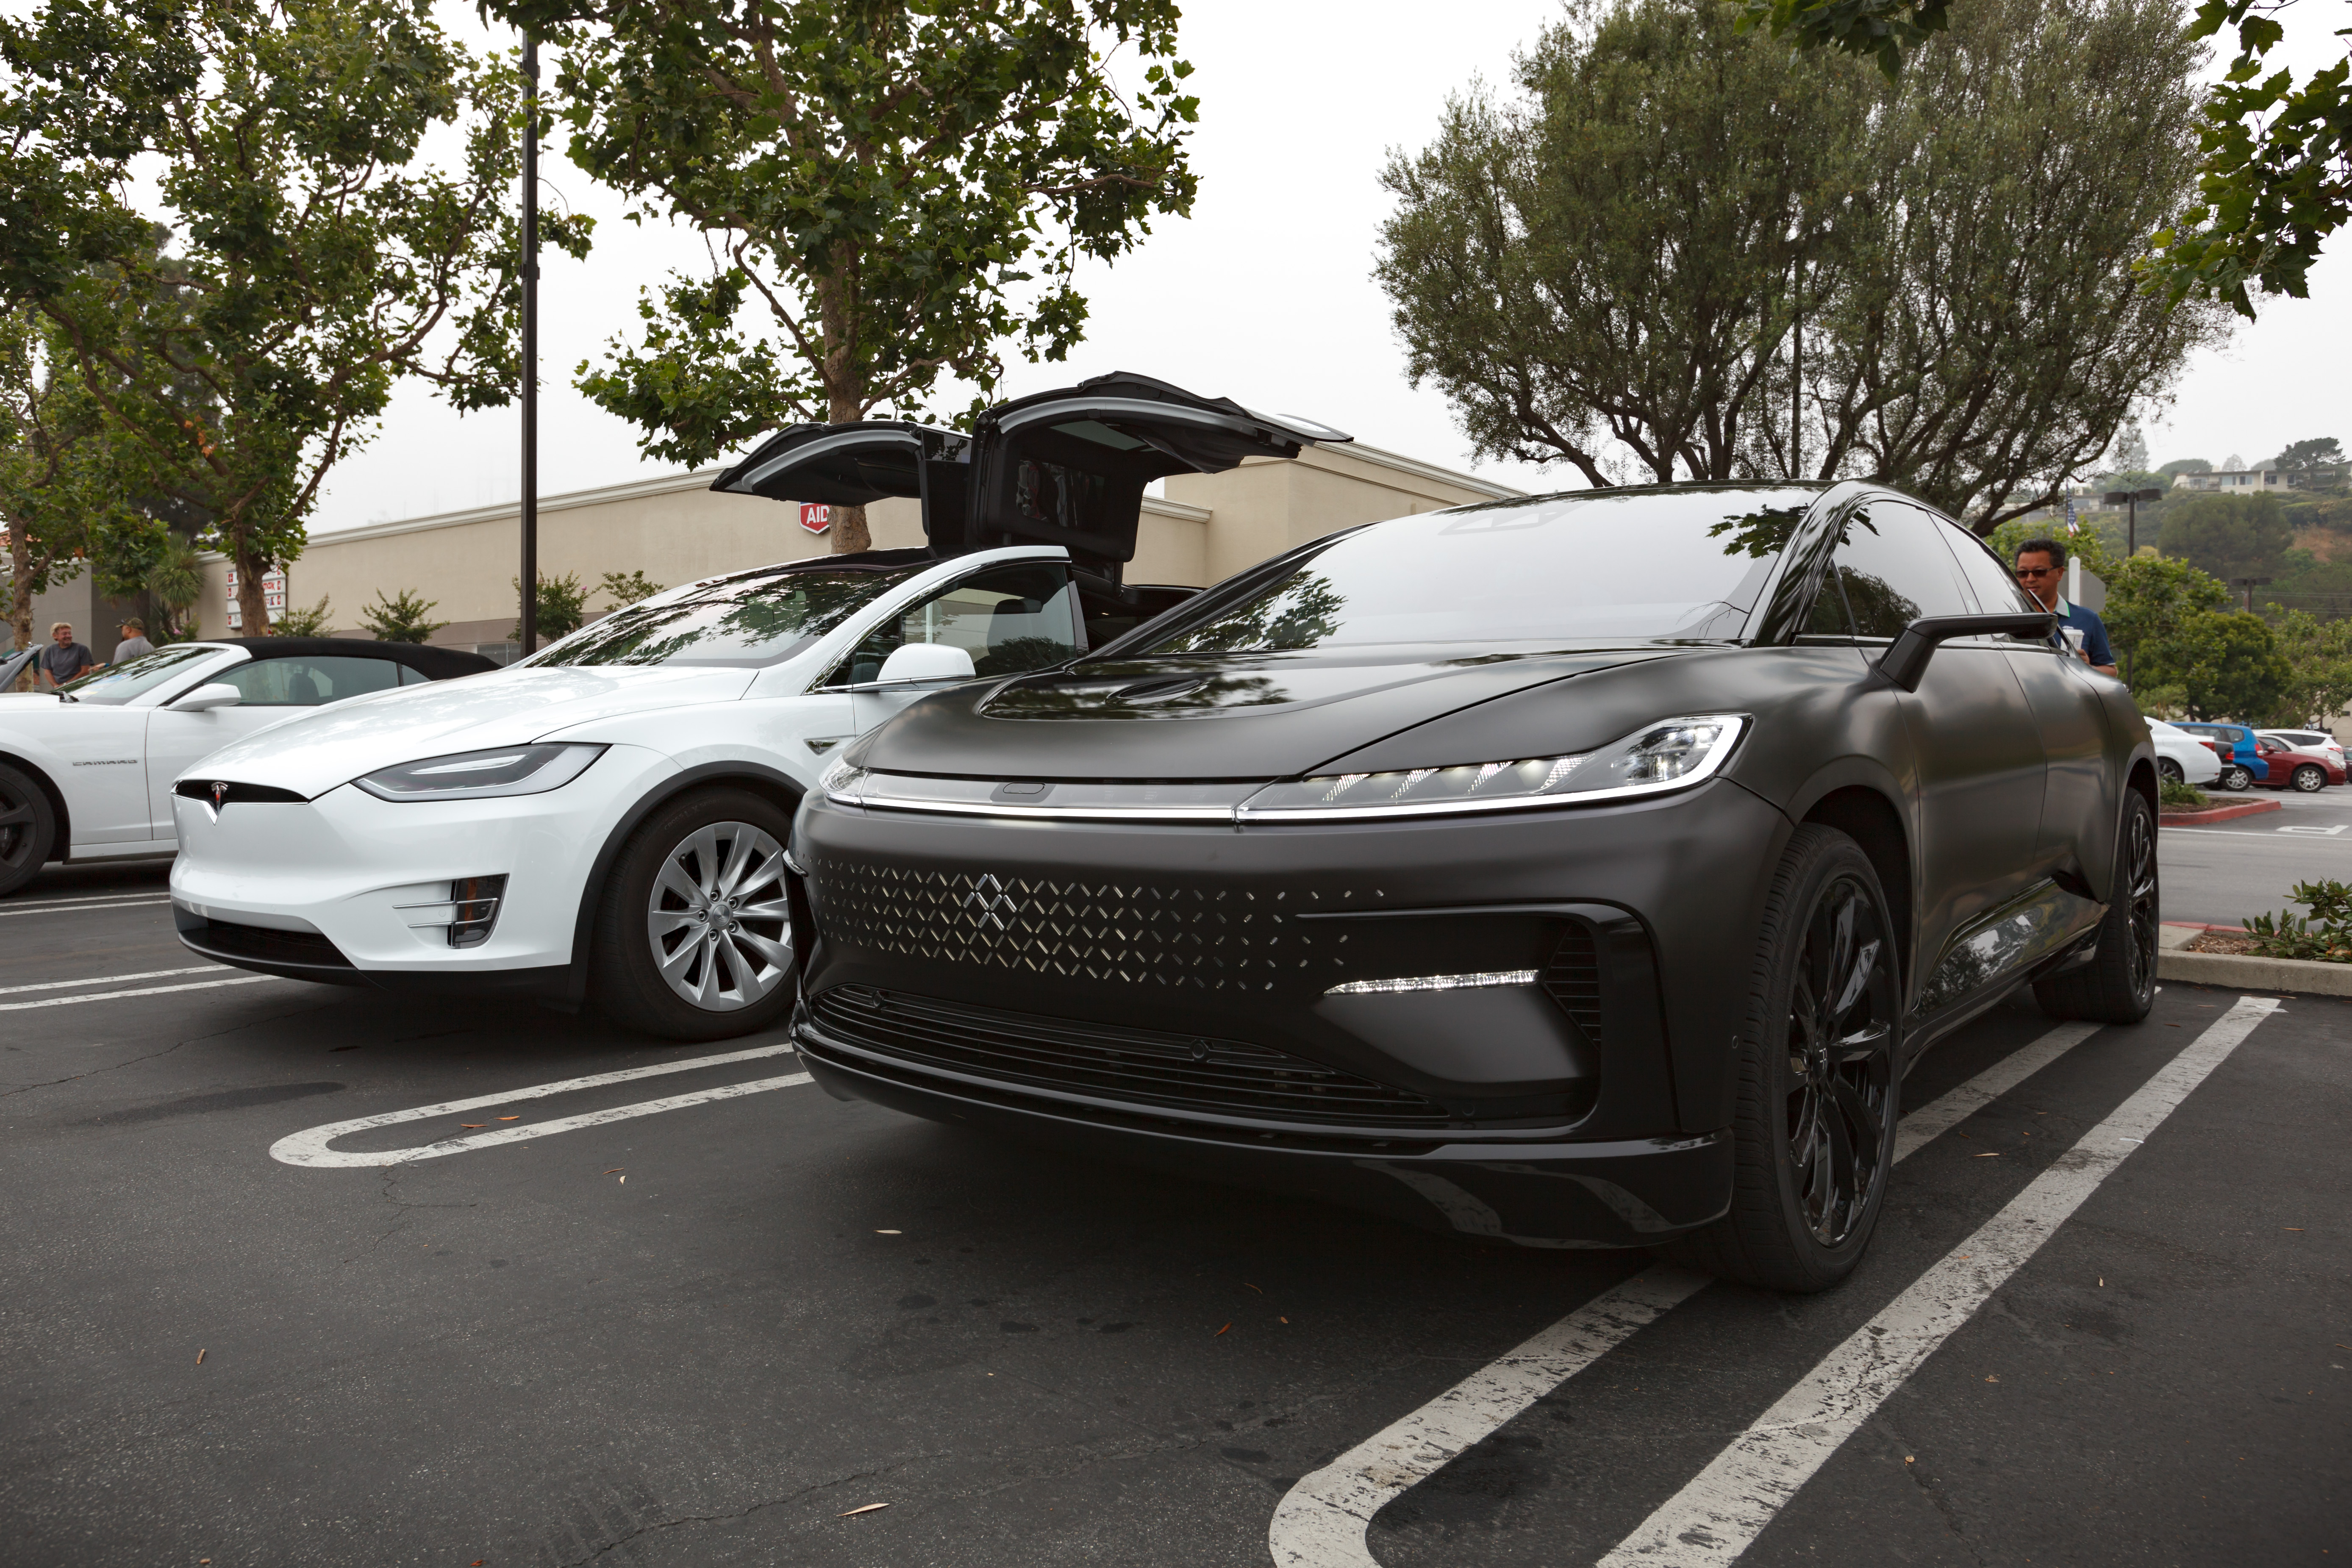 As You Can See The Vehicles Look About Same Size But Ff91 Is Significantly Longer At 206 7 Versus Model X S 198 3